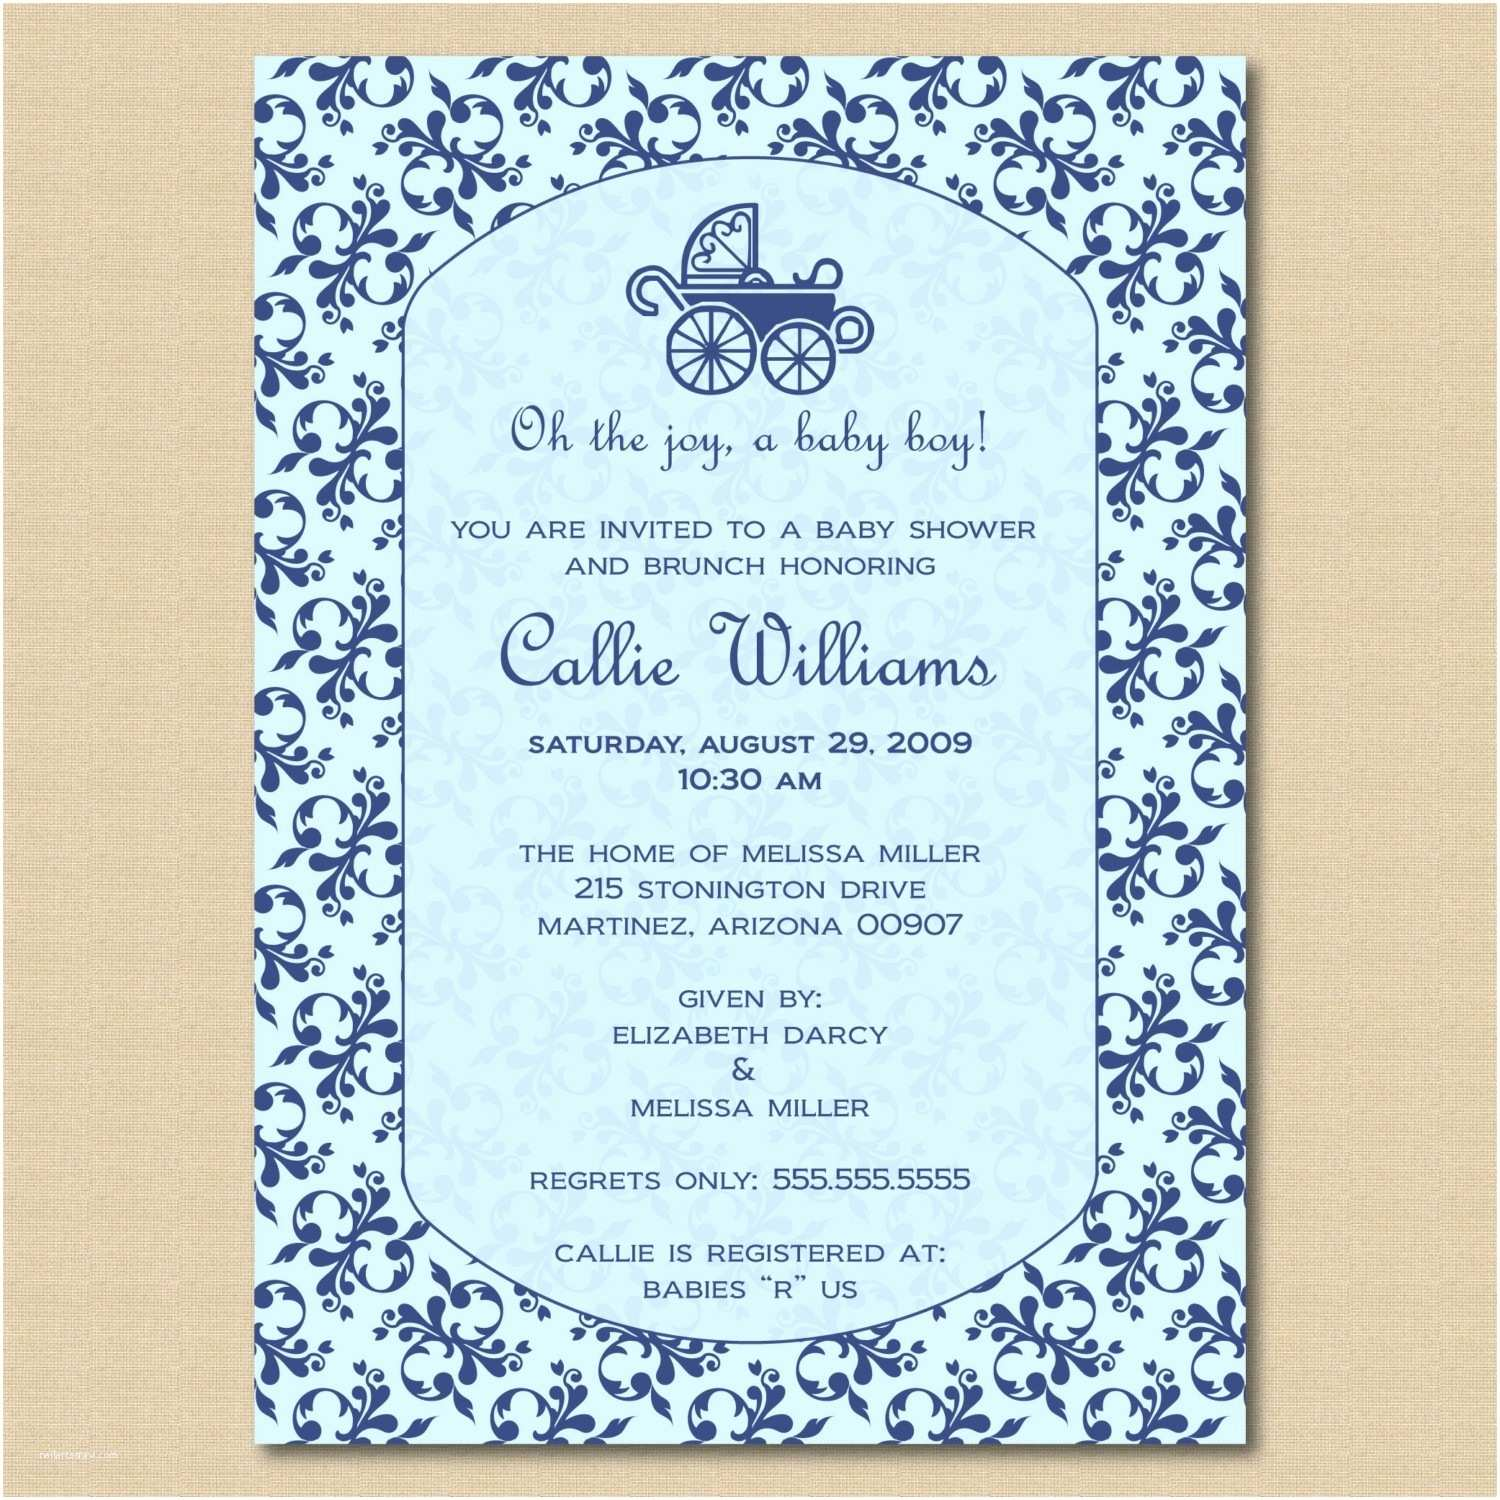 Baby Shower Invitation Wording for A Boy Baby Invitation Quotes Quotesgram